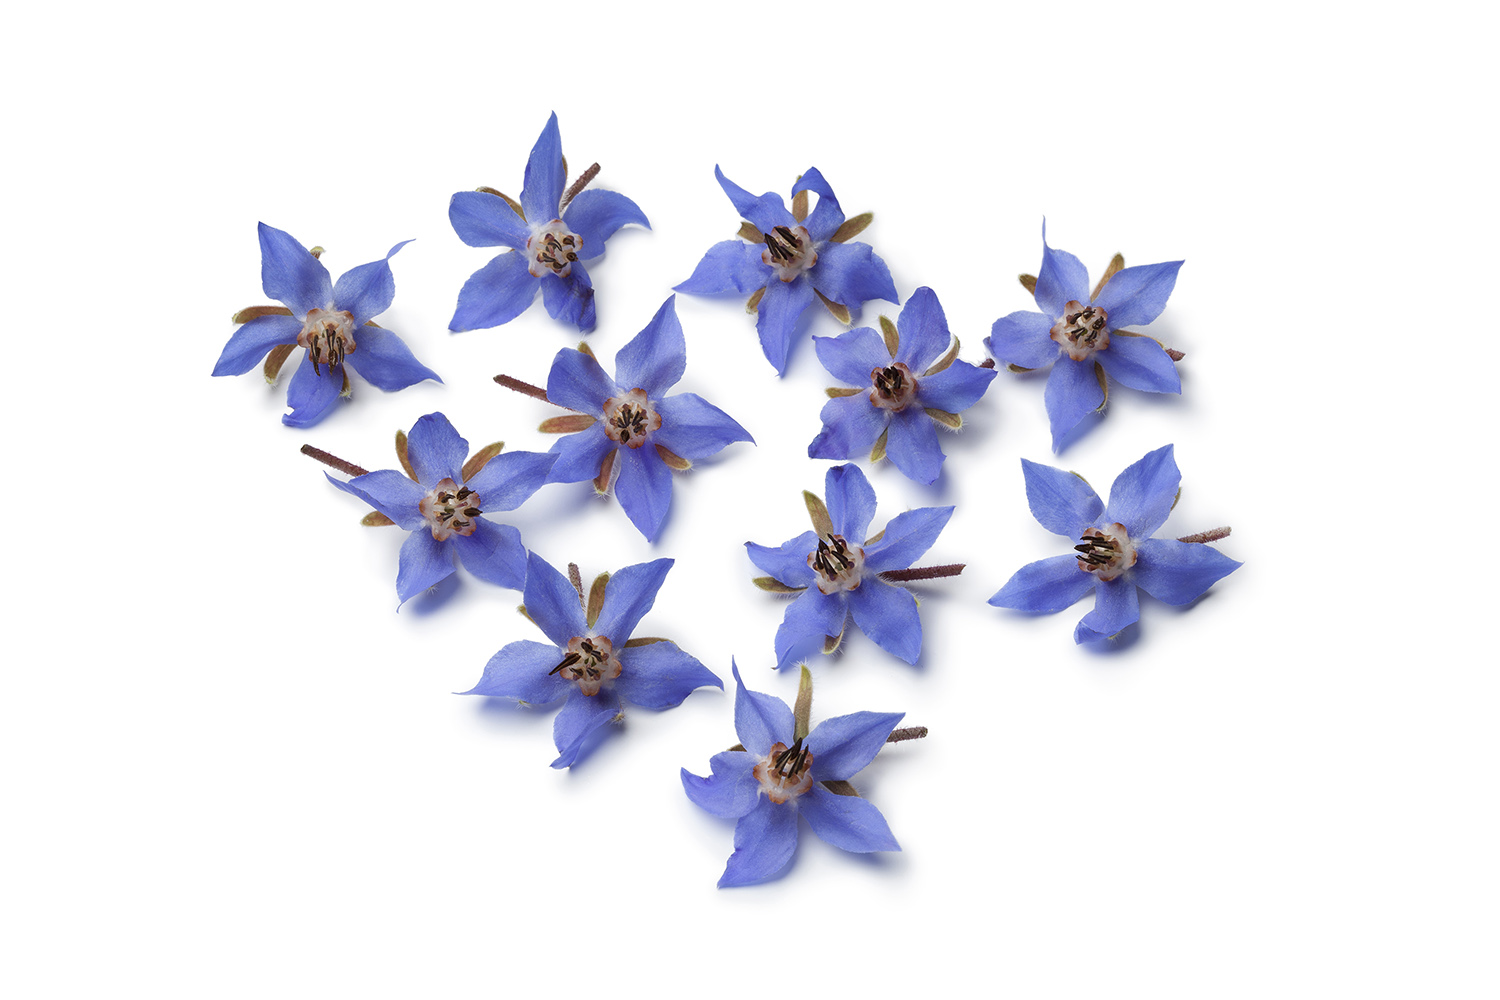 RIWAY's PURTIER Health Supplement Ingredient - Borage Oil, 干细胞胎盘素保健品成分 - 琉璃苣油